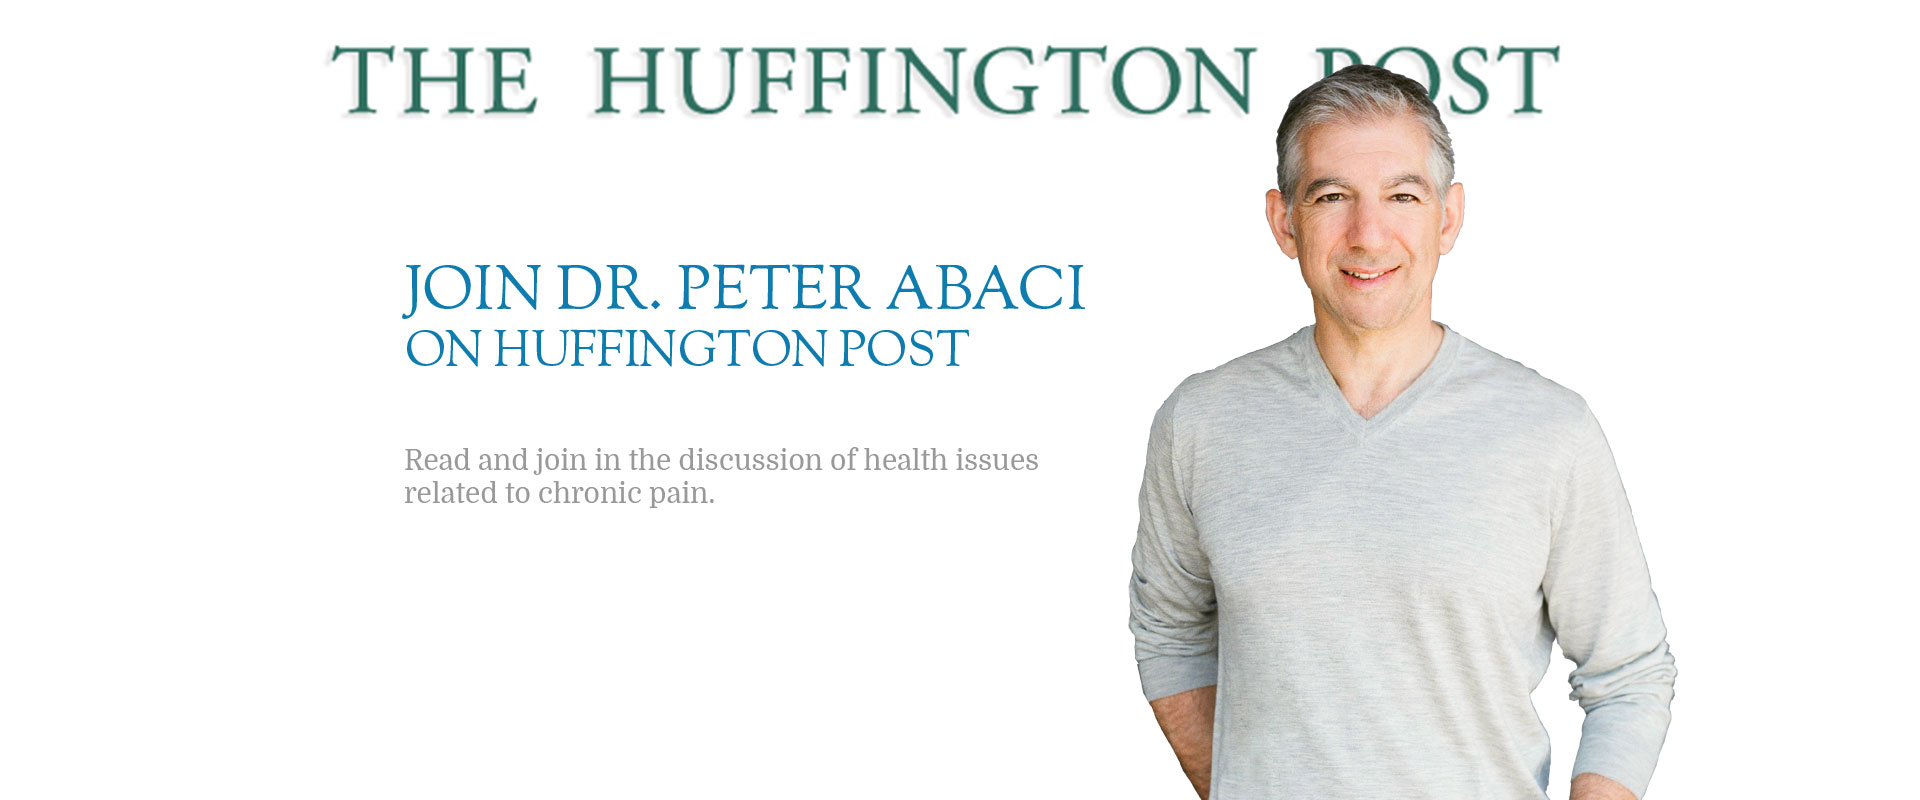 Peter Abaci MD on Huffington Post